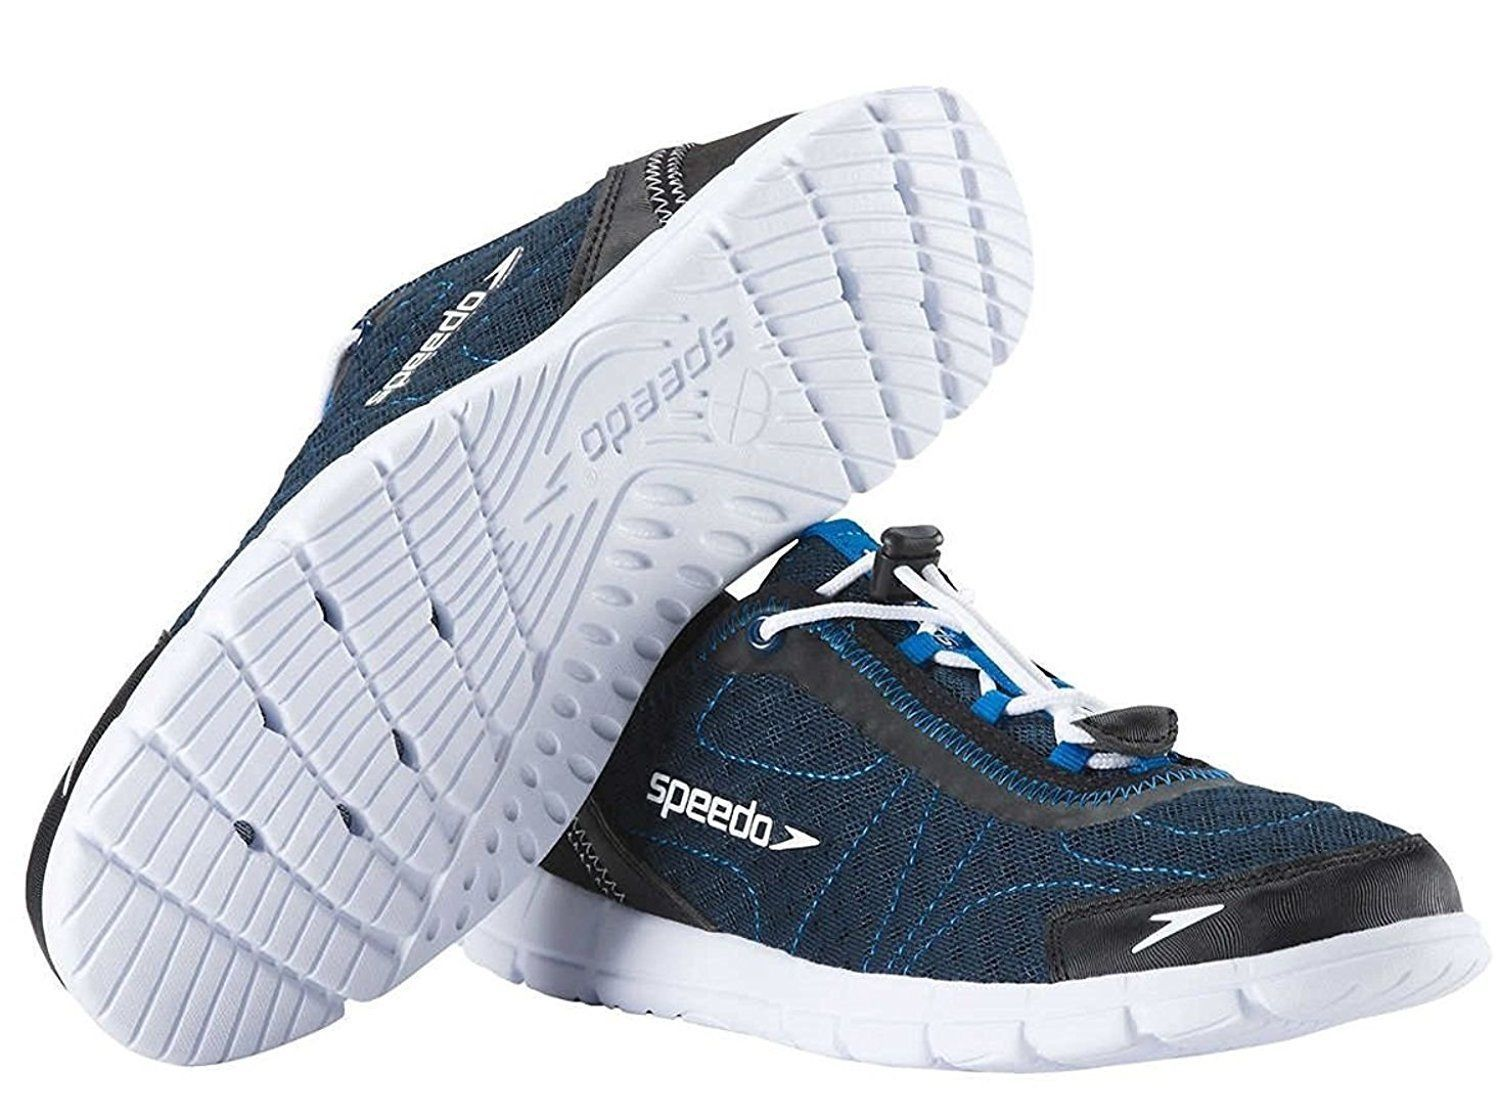 46e8547670f9 S l1600. S l1600. Previous. NEW SPEEDO MEN S HYBRID WATERCROSS LAND WATER  RUNNING SHOES SIZE 9